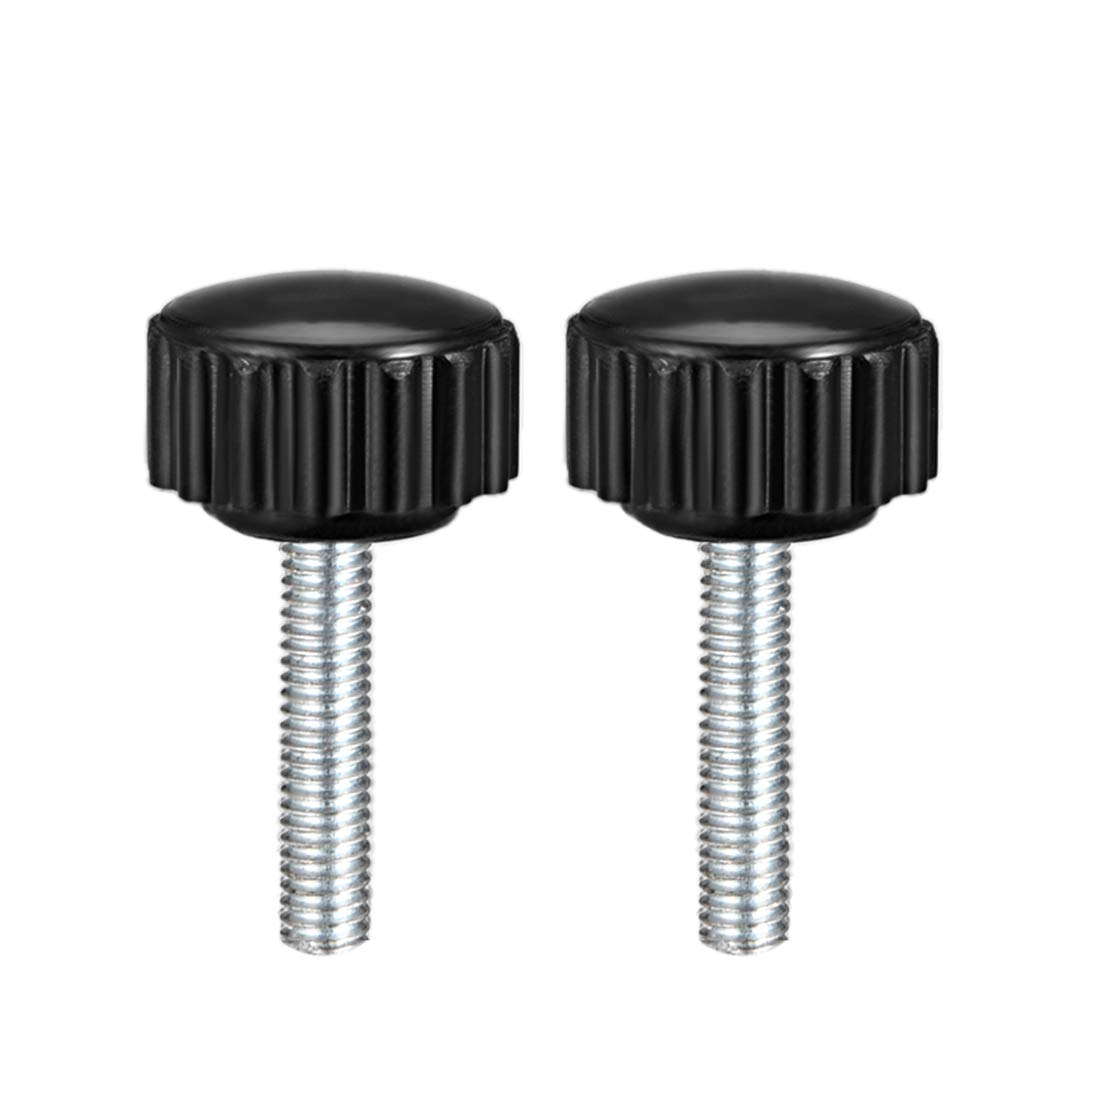 uxcell M8 x 20mm Male Thread Knurled Clamping Knobs Grip Thumb Screw on Type 2 Pcs